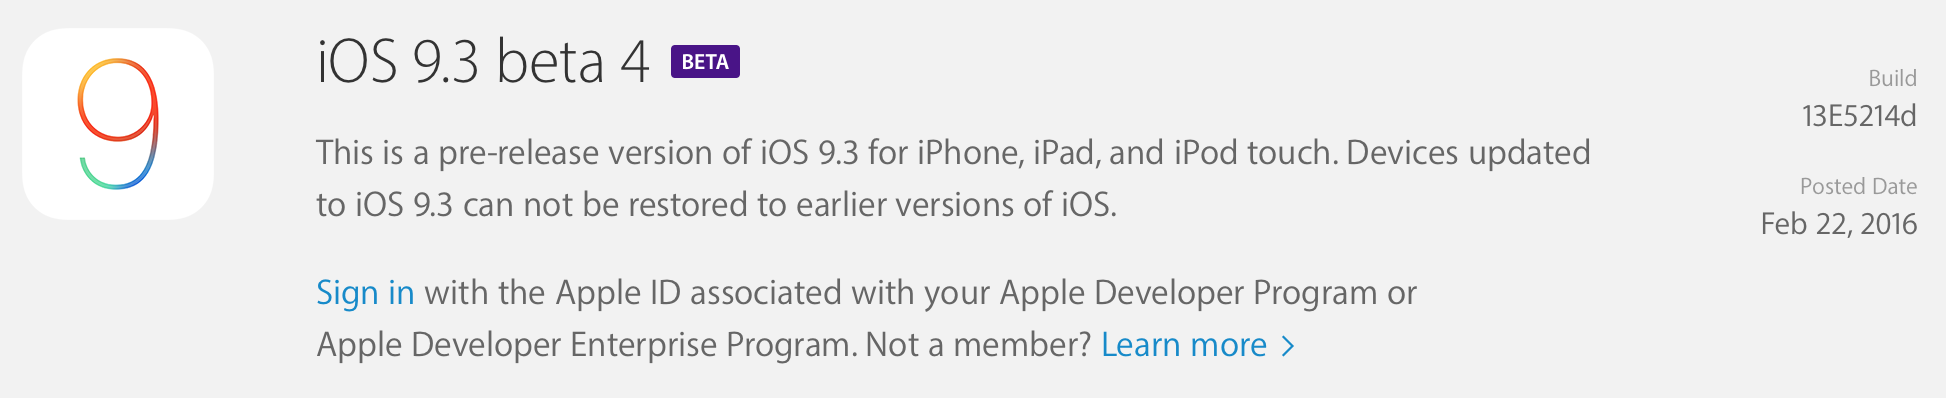 iOS 9 Beta Release Notes-bildschirmfoto-2016-02-22-um-19.10.16.png